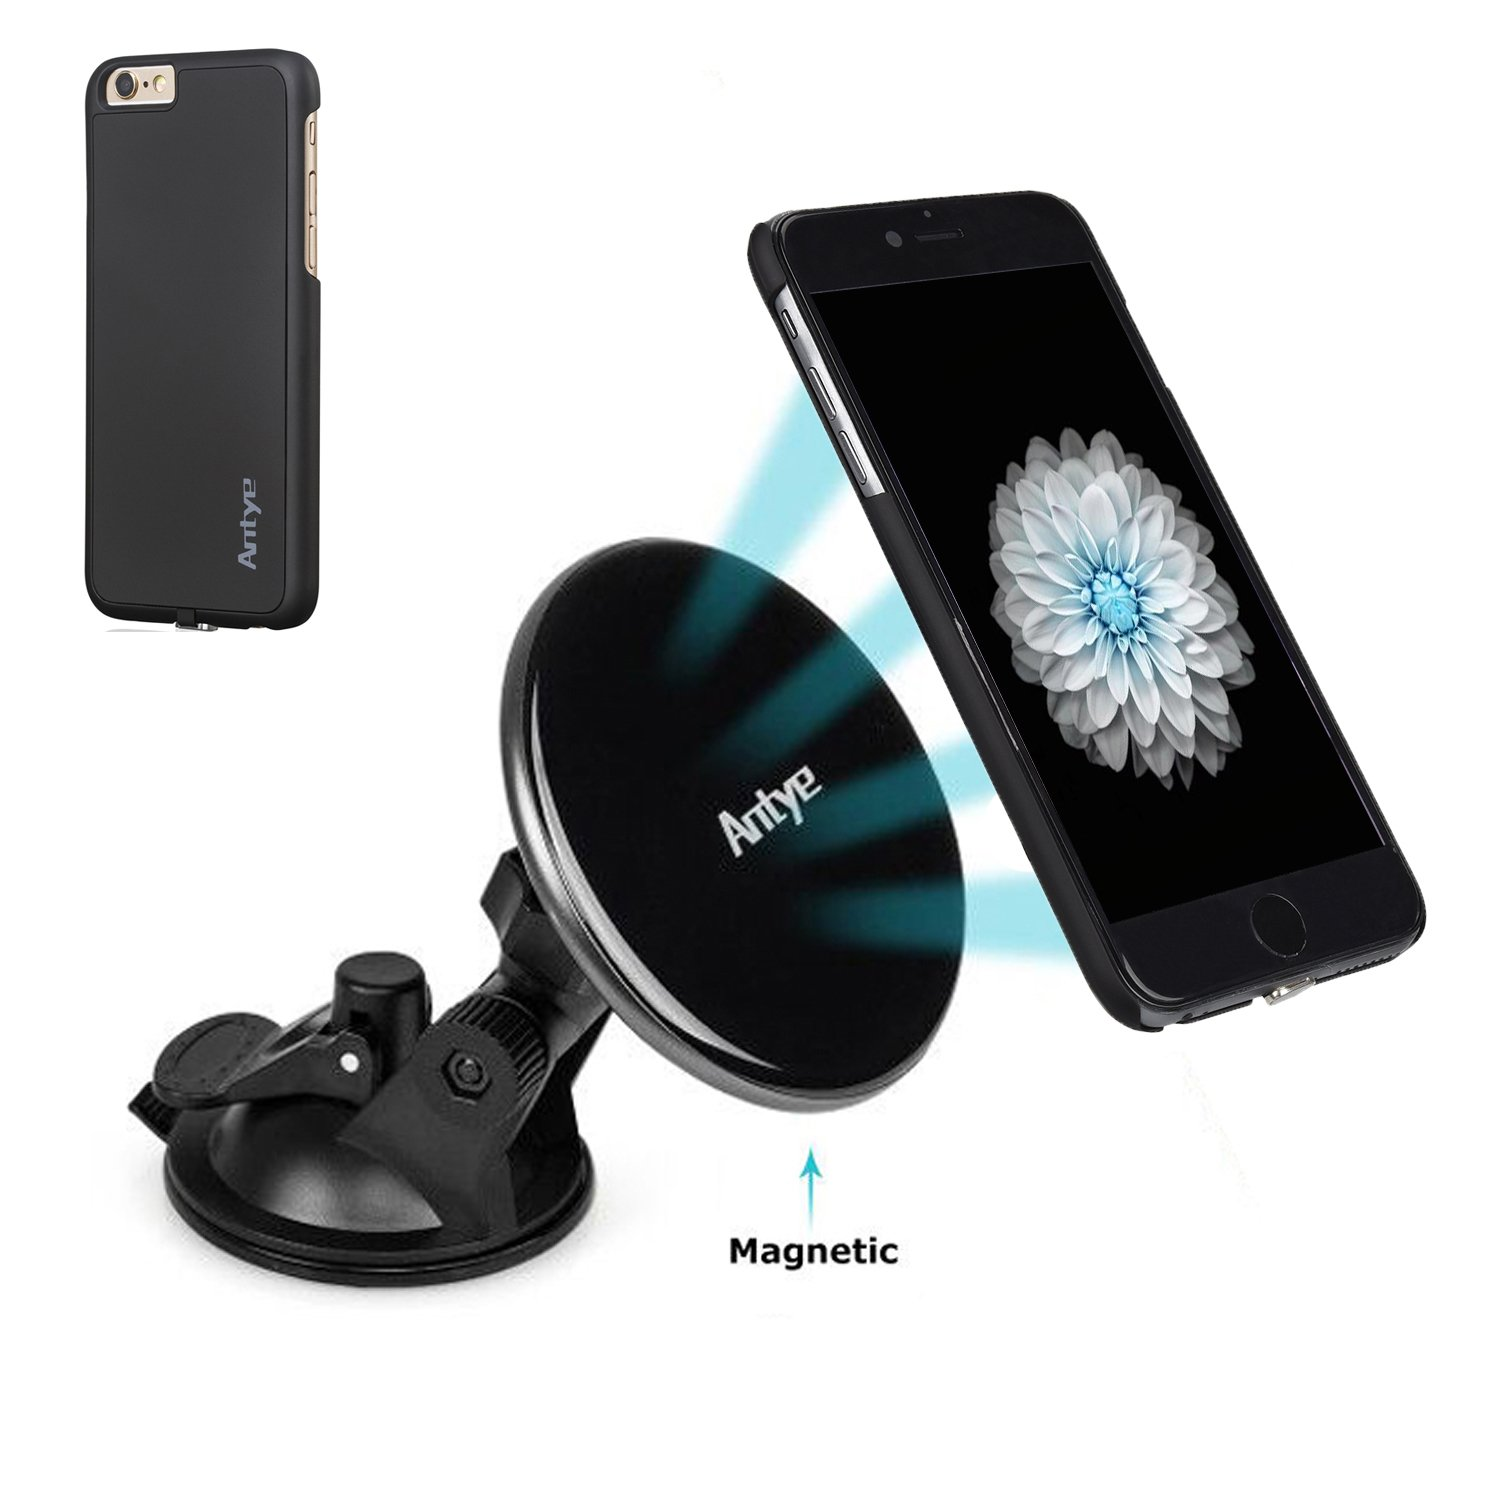 Antye Magnetic Qi Wireless Charger Car Mount for iPhone 6 Plus/6S Plus, [2-in-1] Qi Wireless Charging Dock Cradle Suction Holder & Wireless Charging Receiver Case for iPhone 6 Plus/6S Plus, Black